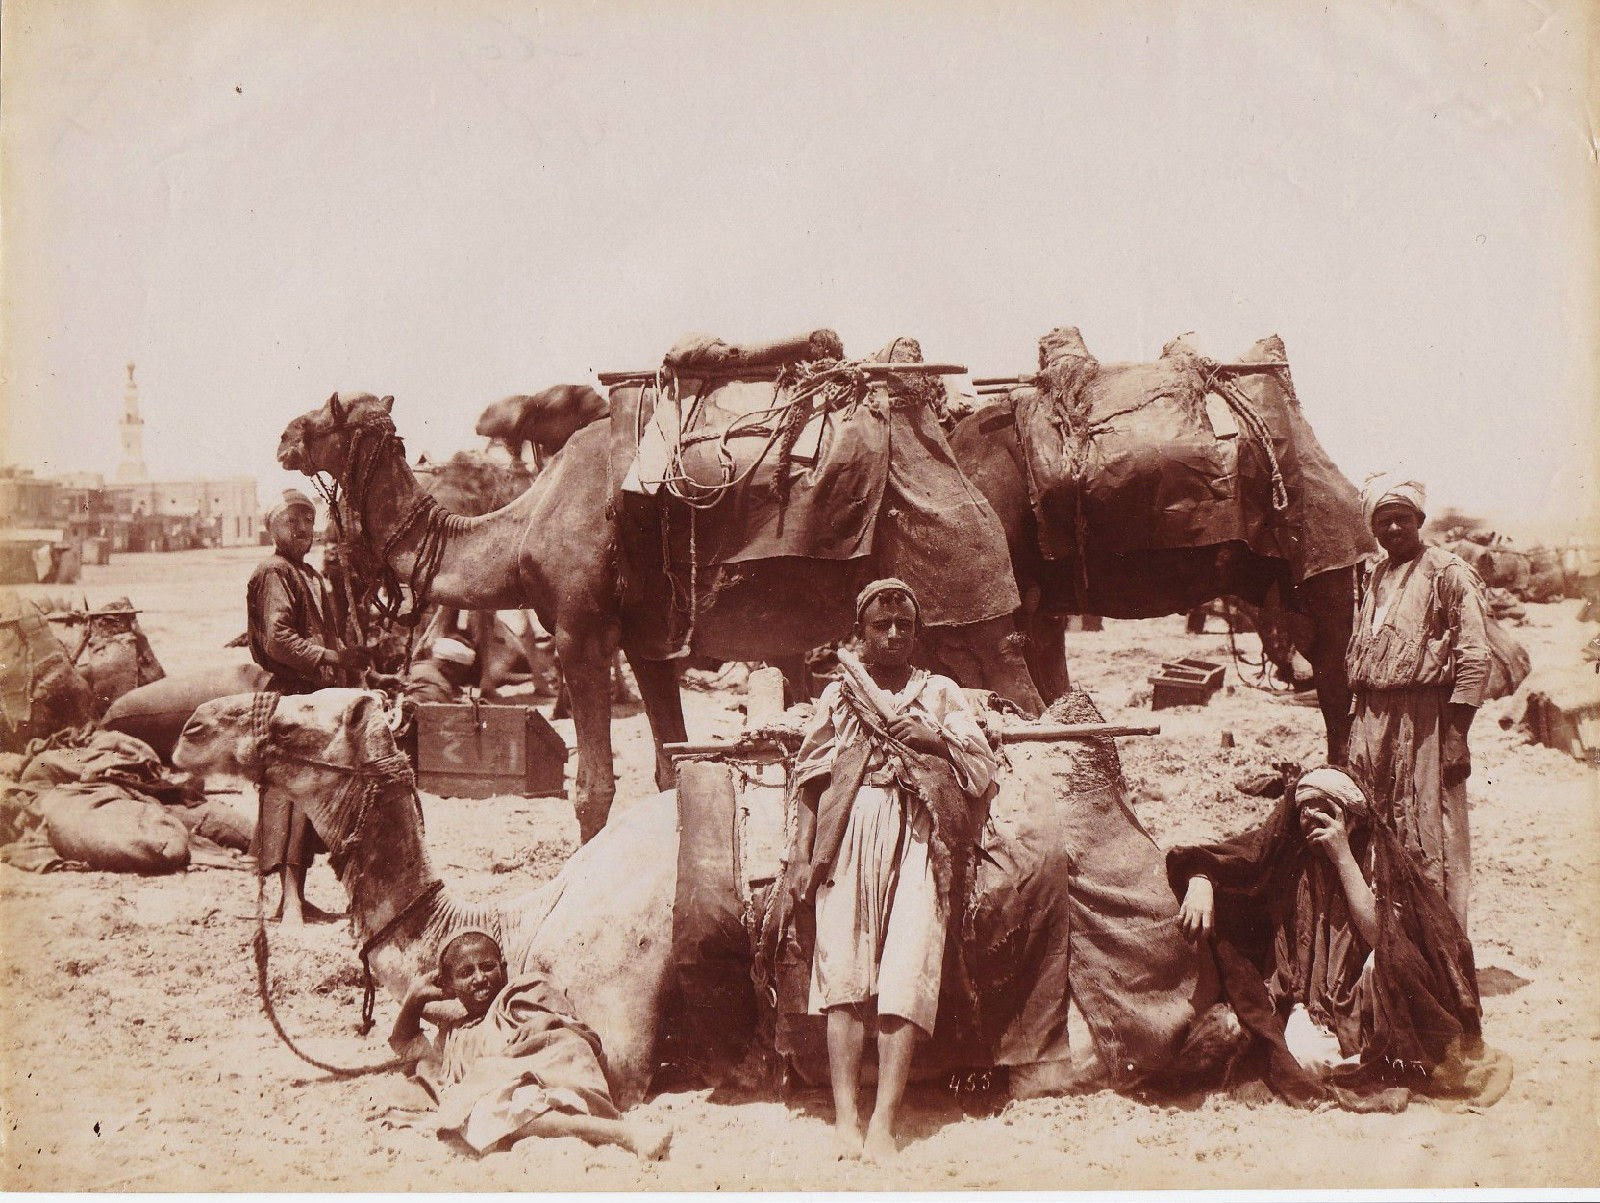 Arab bedouins with their Camels - Middle East Desert c1875